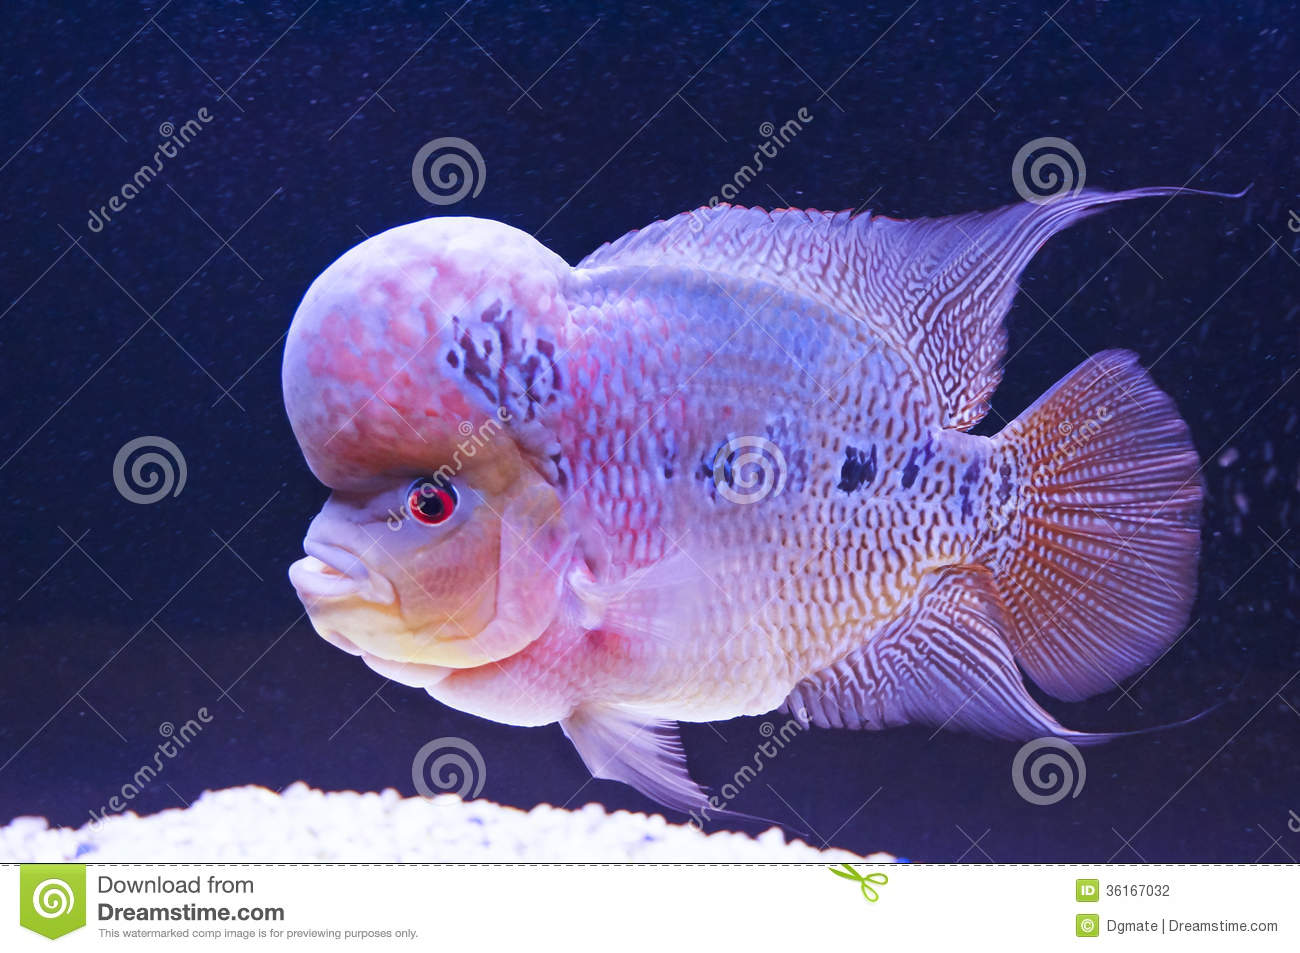 Flower horn fish stock photo image of luohan lohan for Flower horn fish price